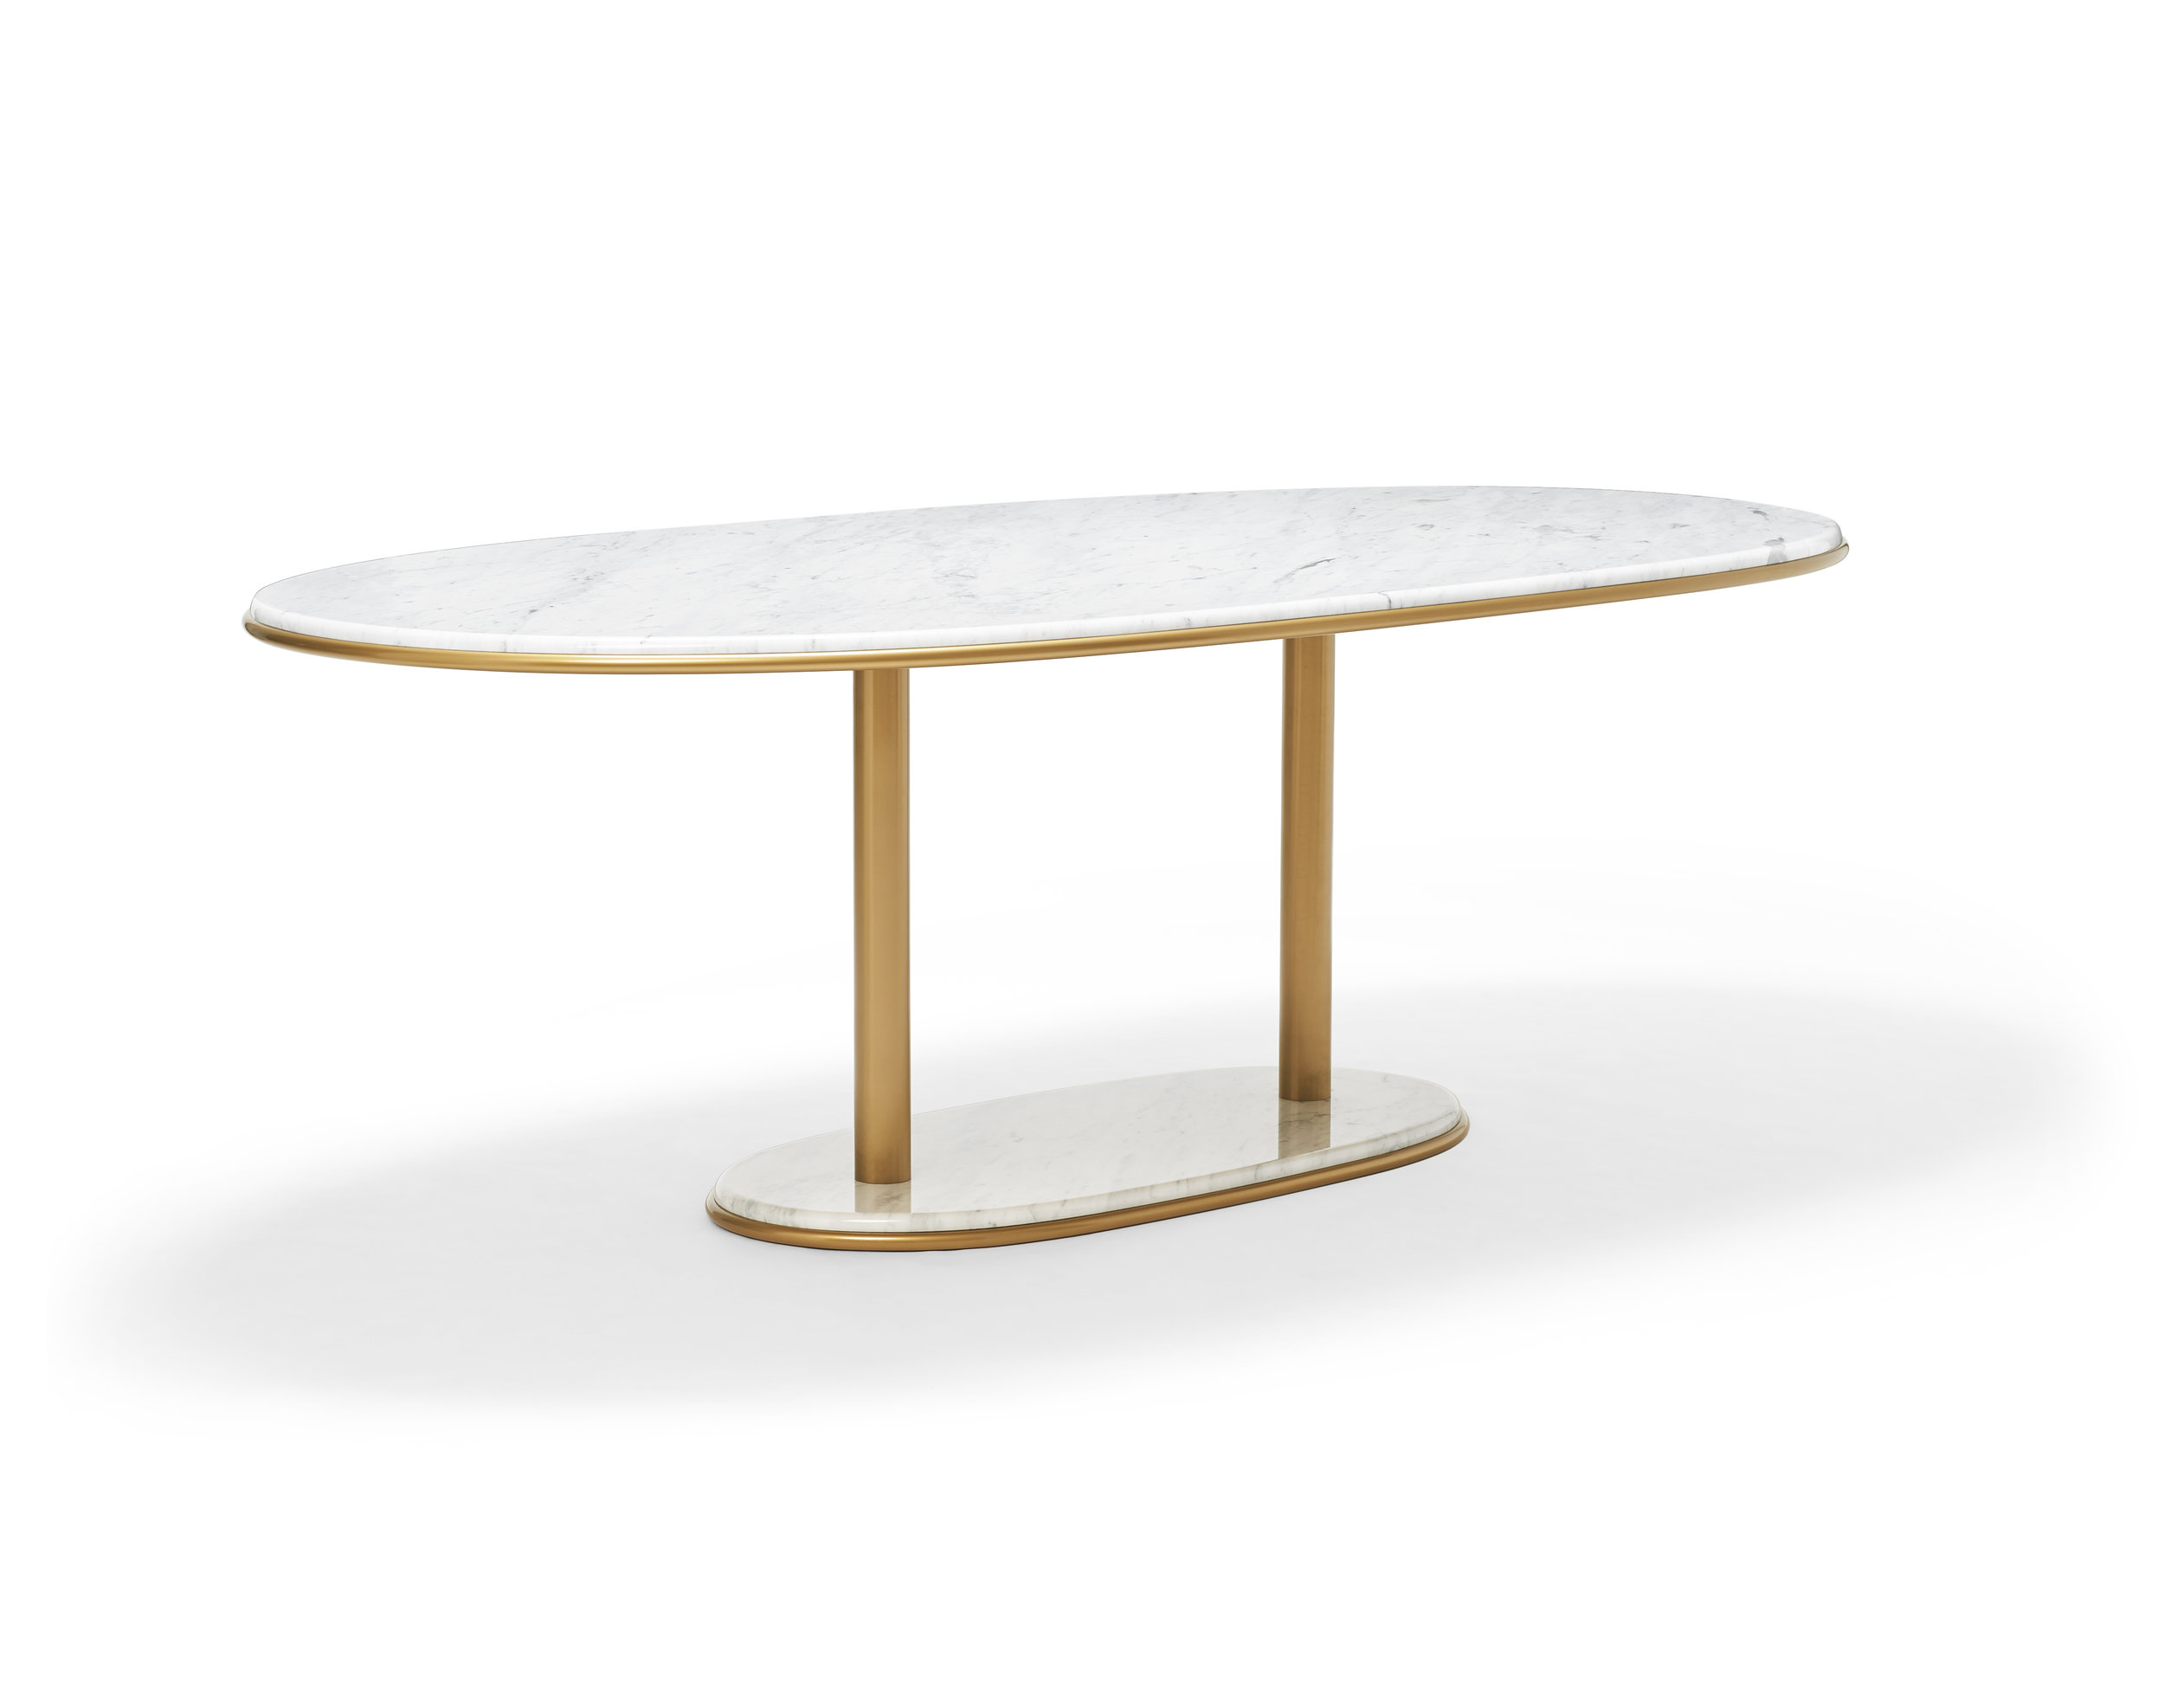 Stay Dining Table 2m - Carrara (1).jpg